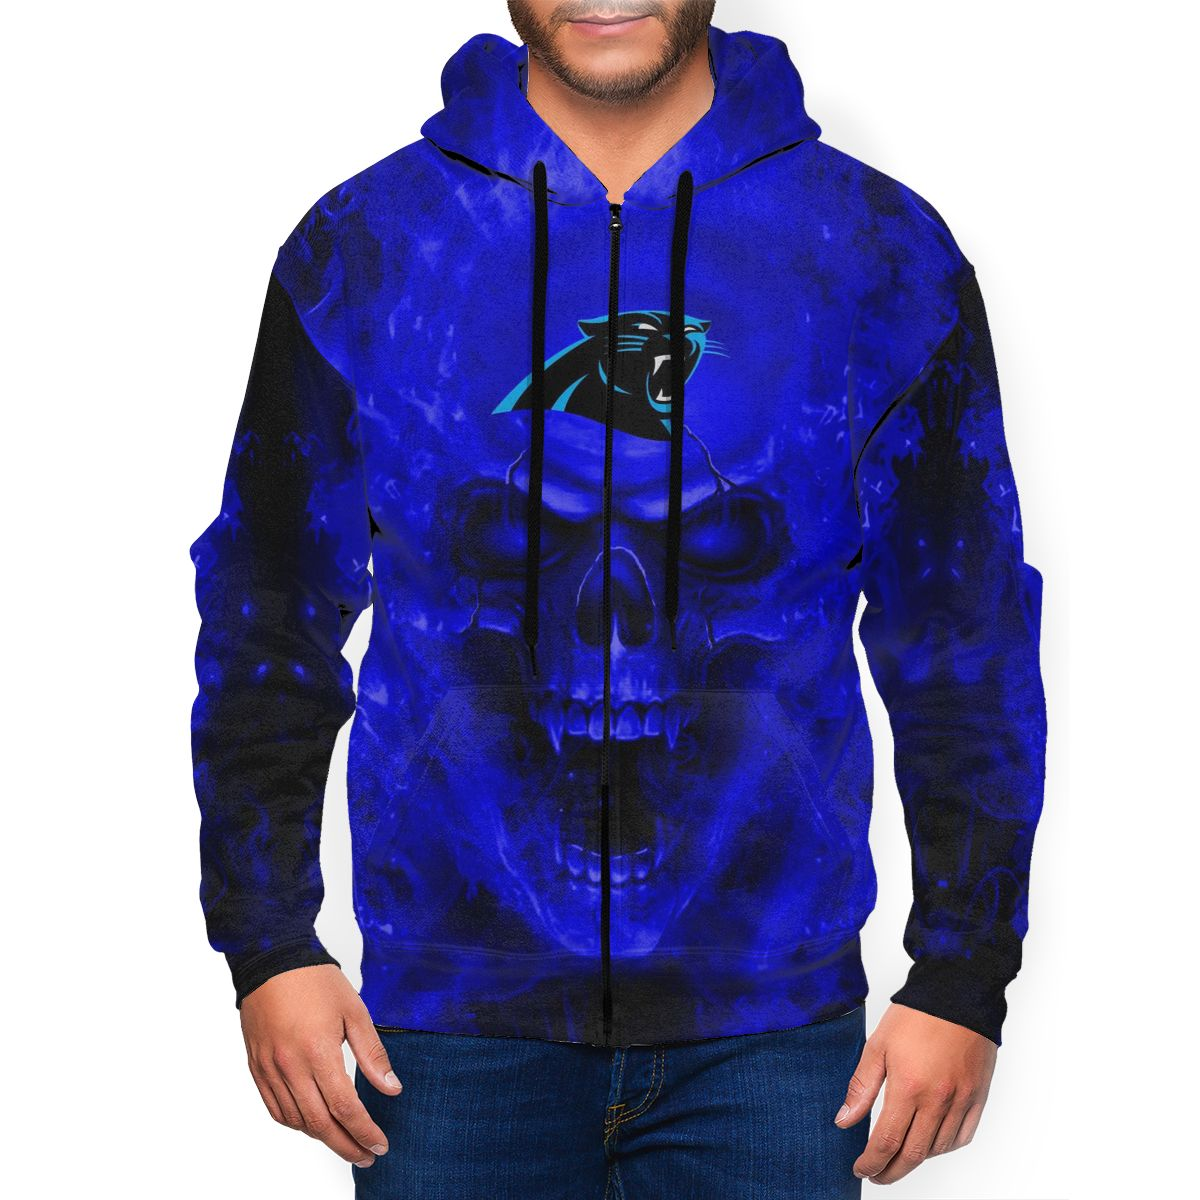 3D Skull Panthers Men's Zip Hooded Sweatshirt